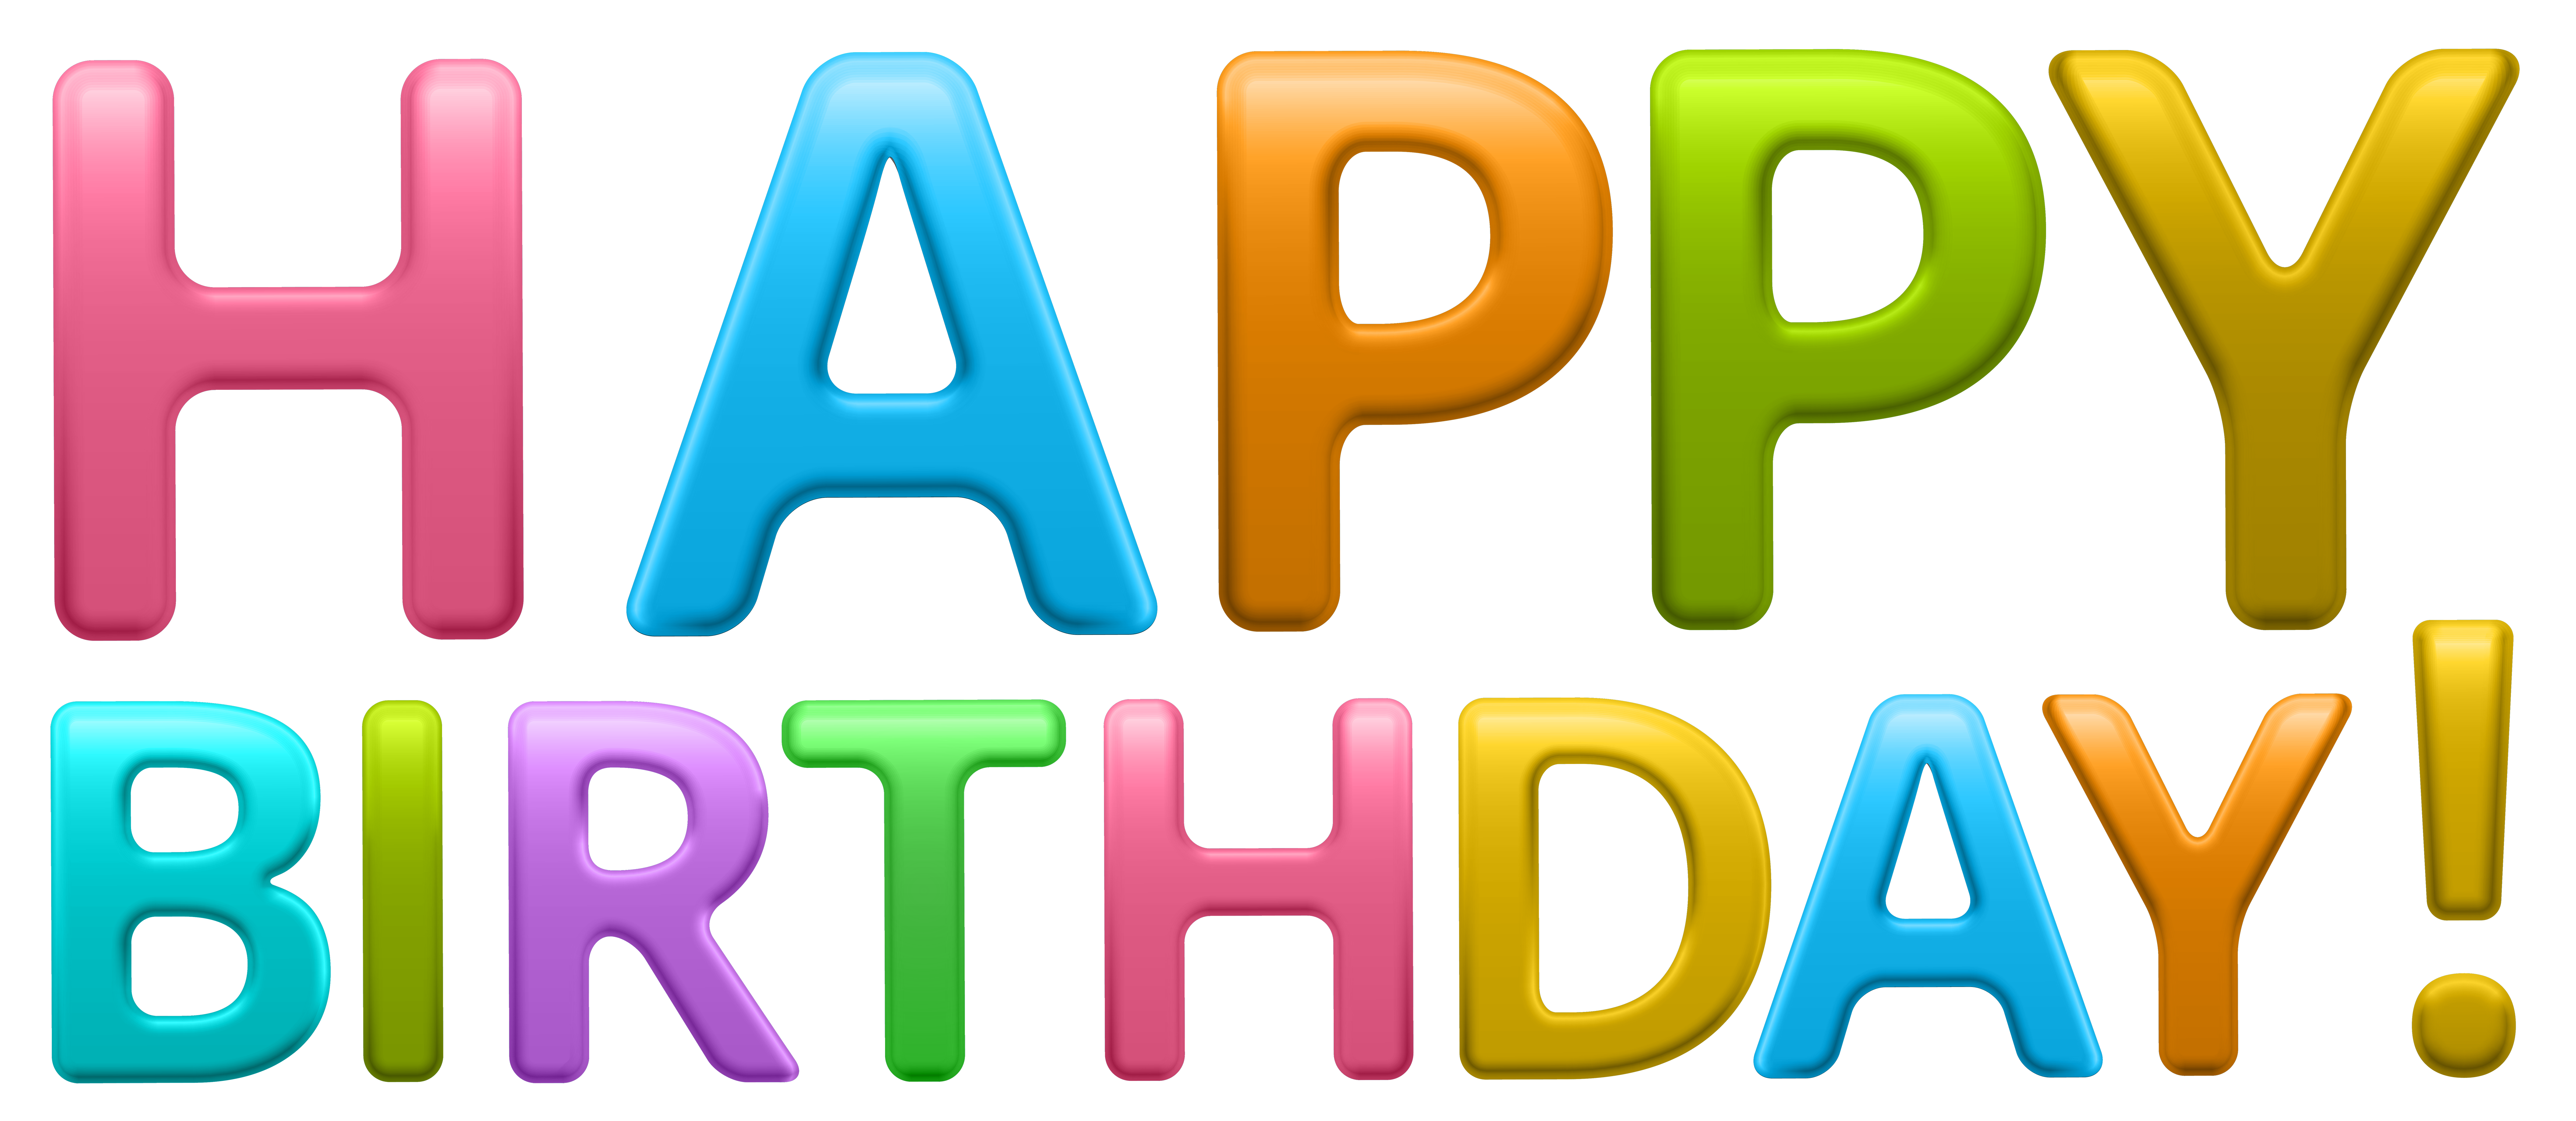 Free Clipart Happy Birthday - clipart clip black and white library